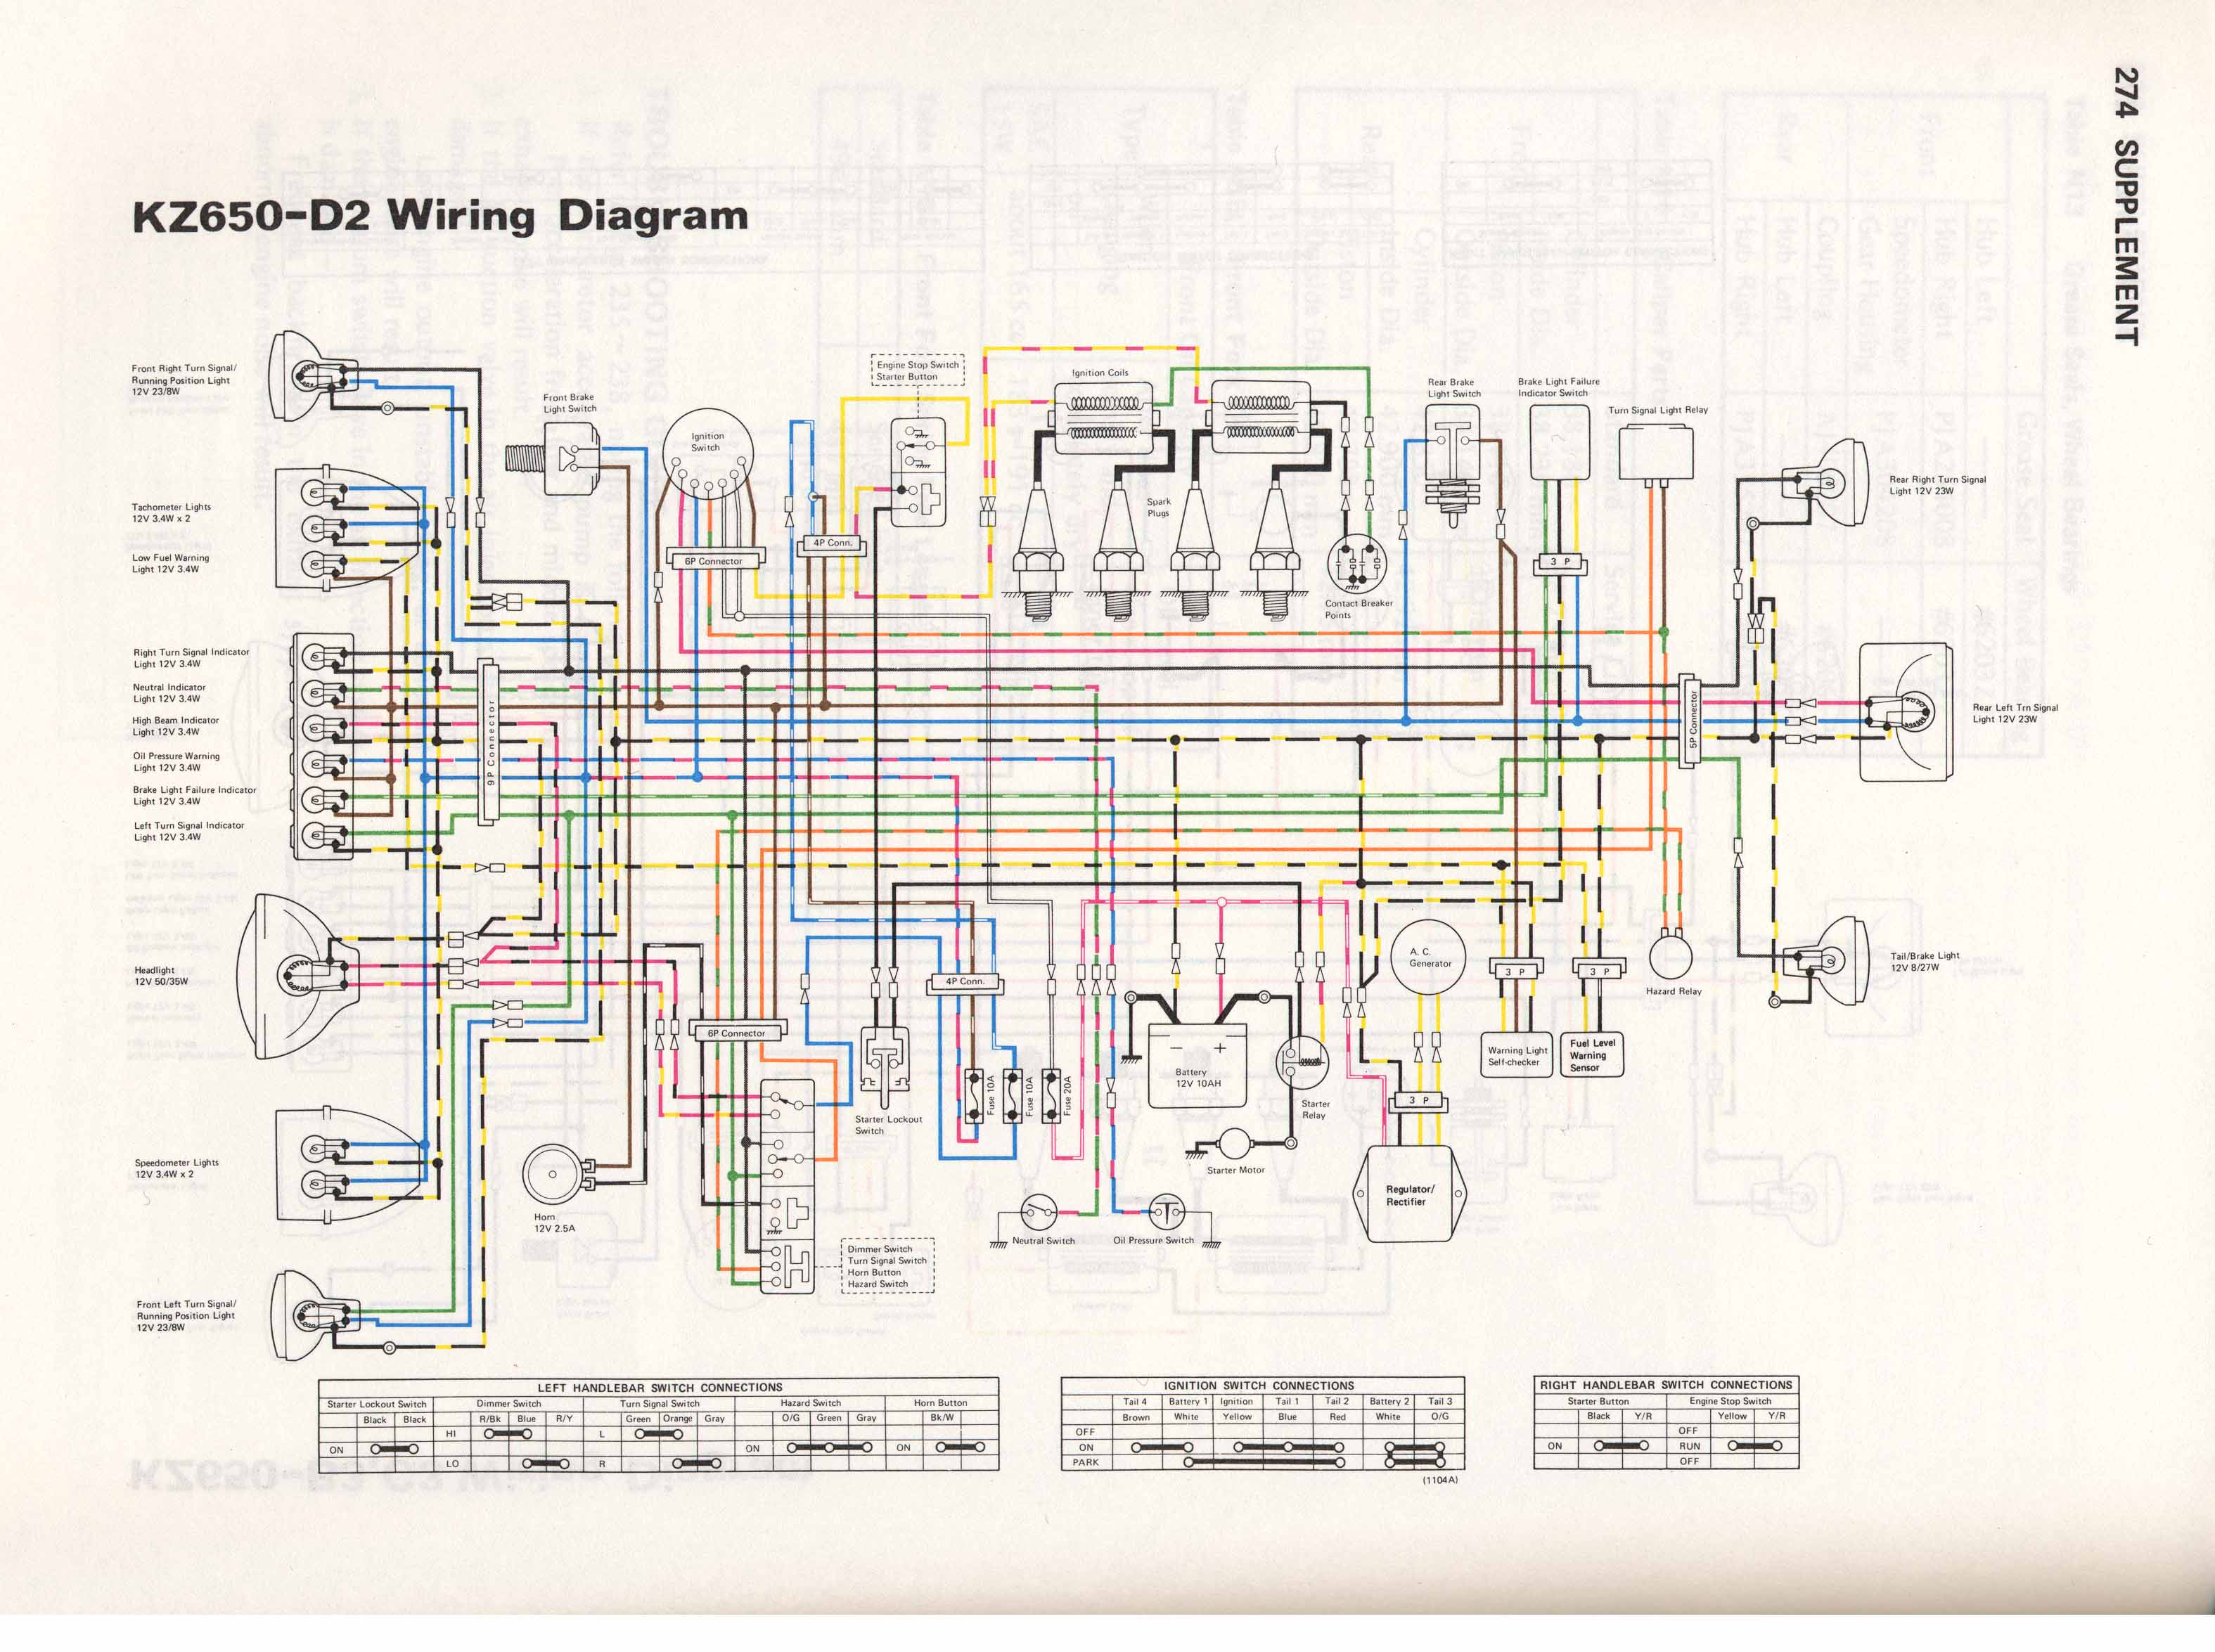 Yamaha R1 Wiring Diagram On For 2012 Kawasaki 650r Victory Light Switch U2022 Rh Prestonfarmmotors Co